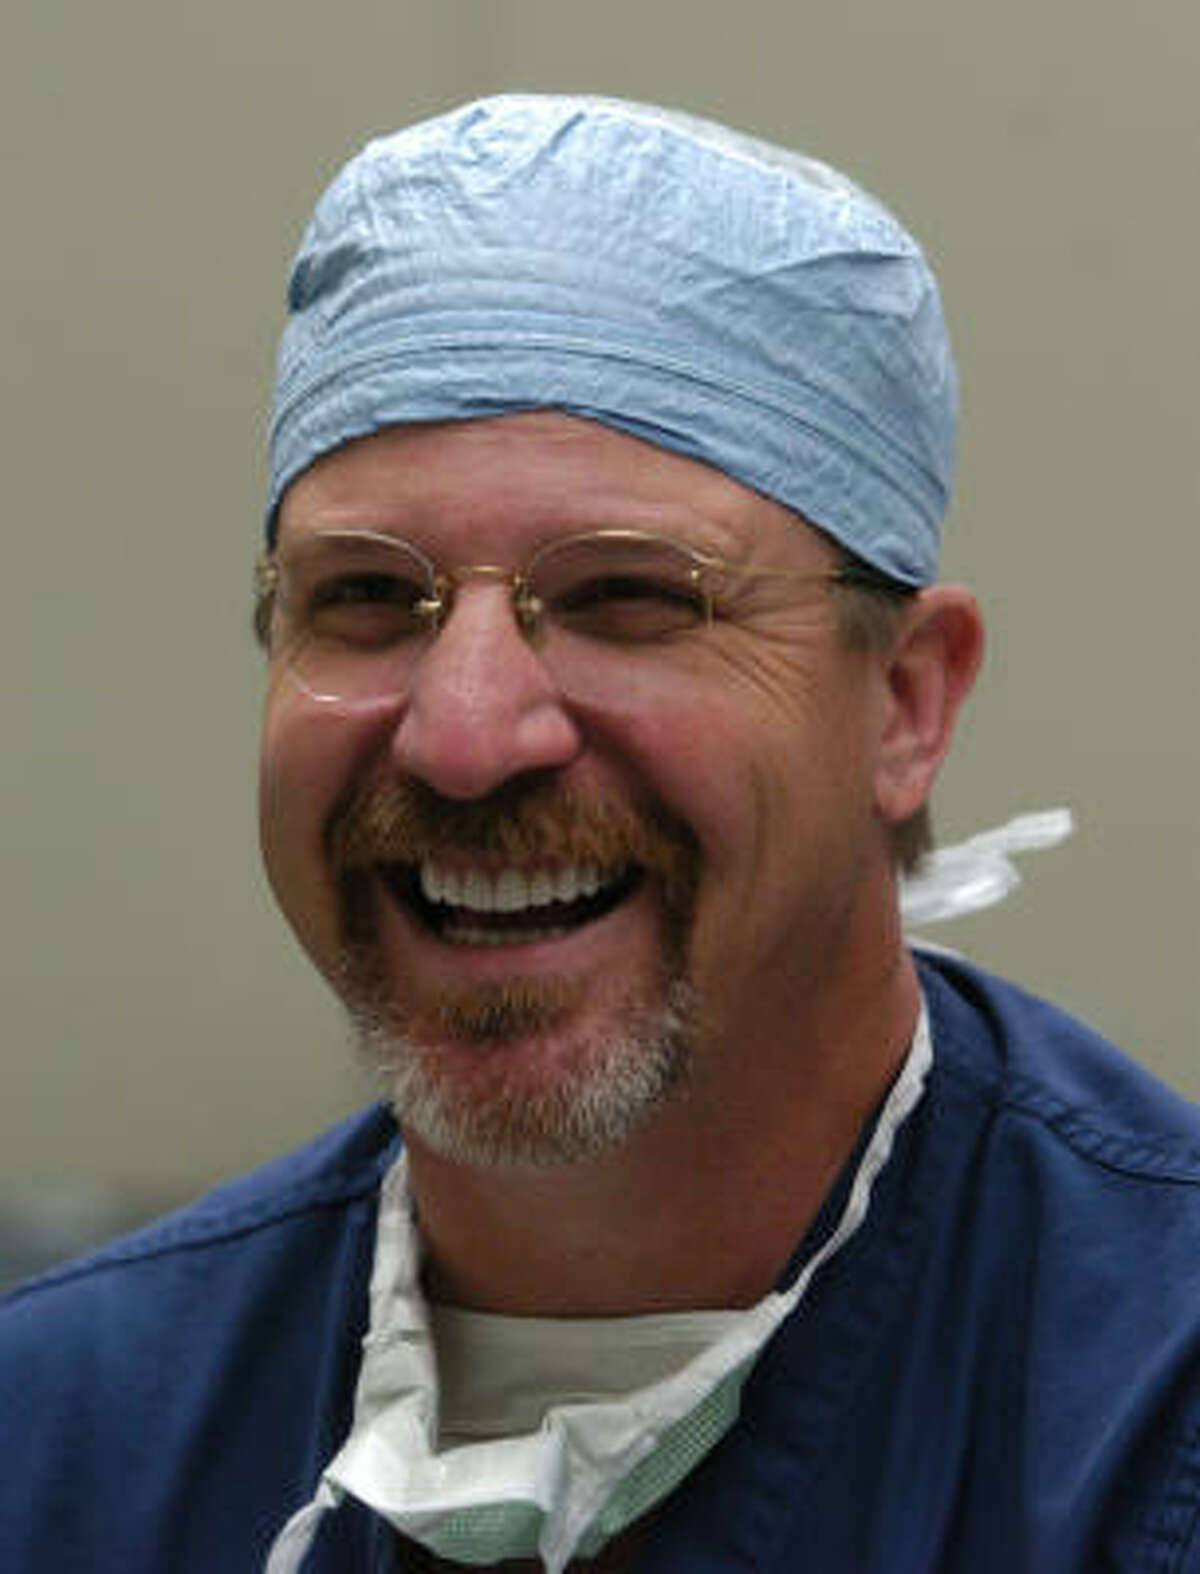 Plastic surgeon Dr. Eugene Alford works with Face to Face, which helps survivors of domestic violence.